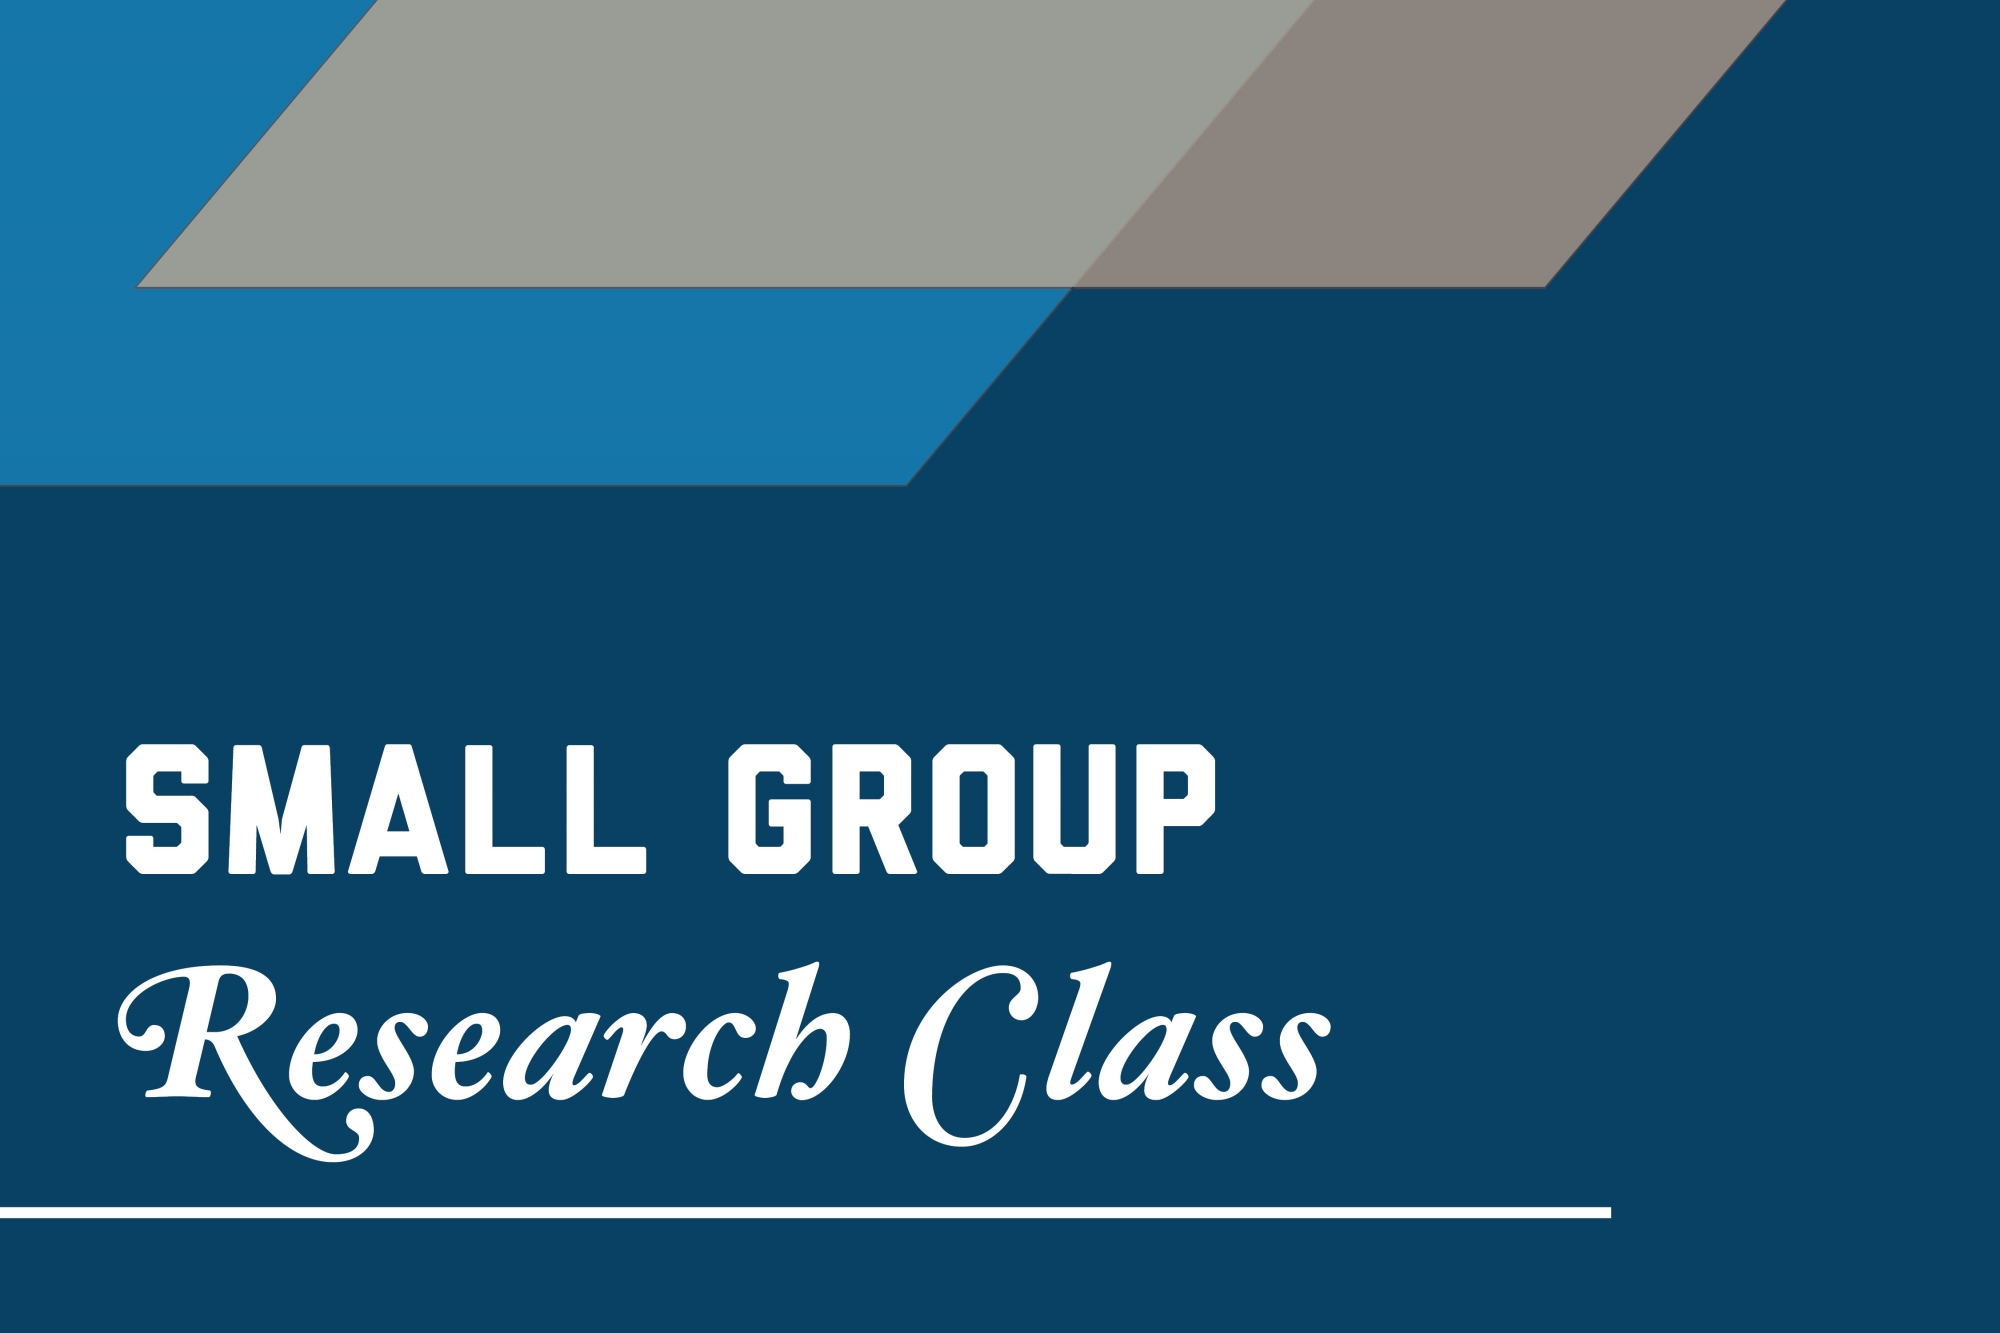 Graphic: Small group research class